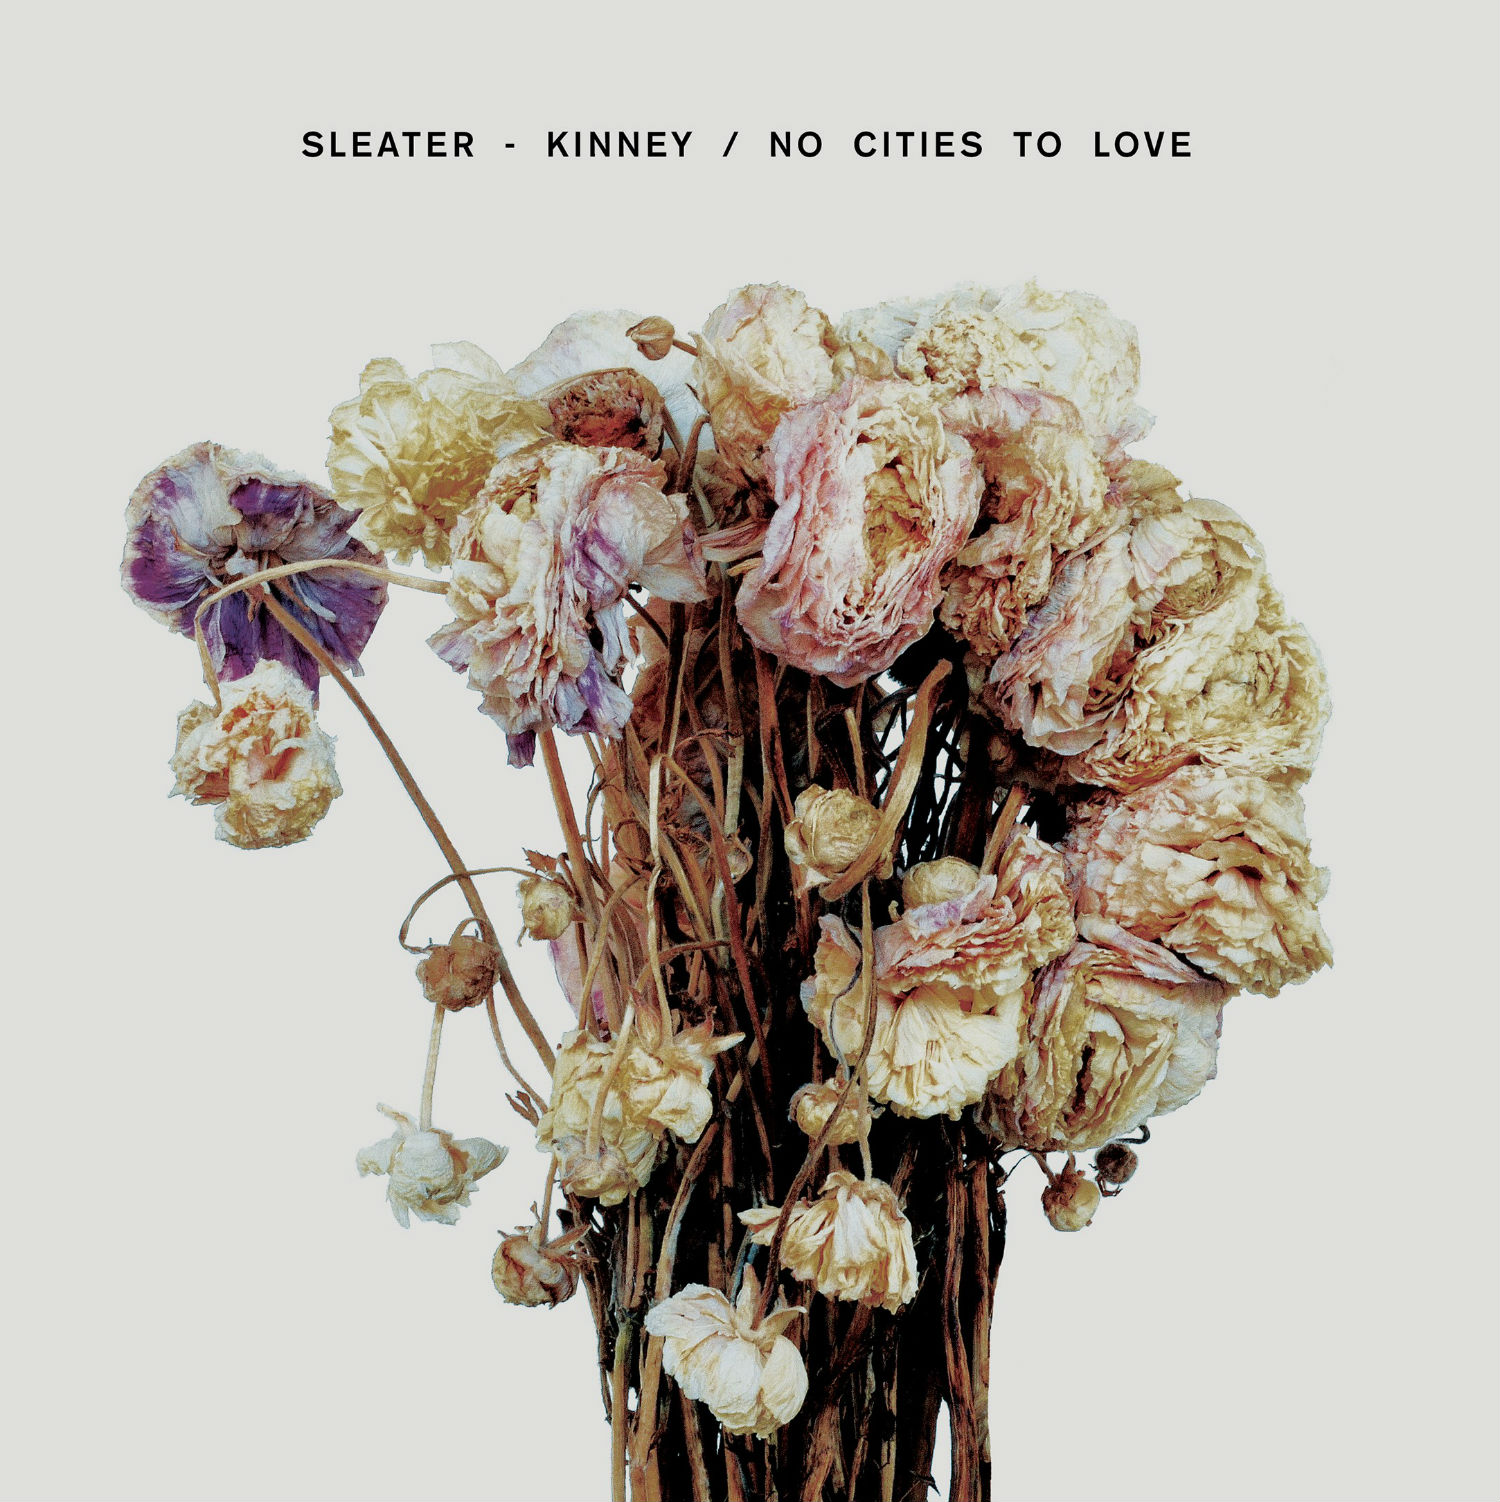 sleater kinney no cities to love cover flowers dying